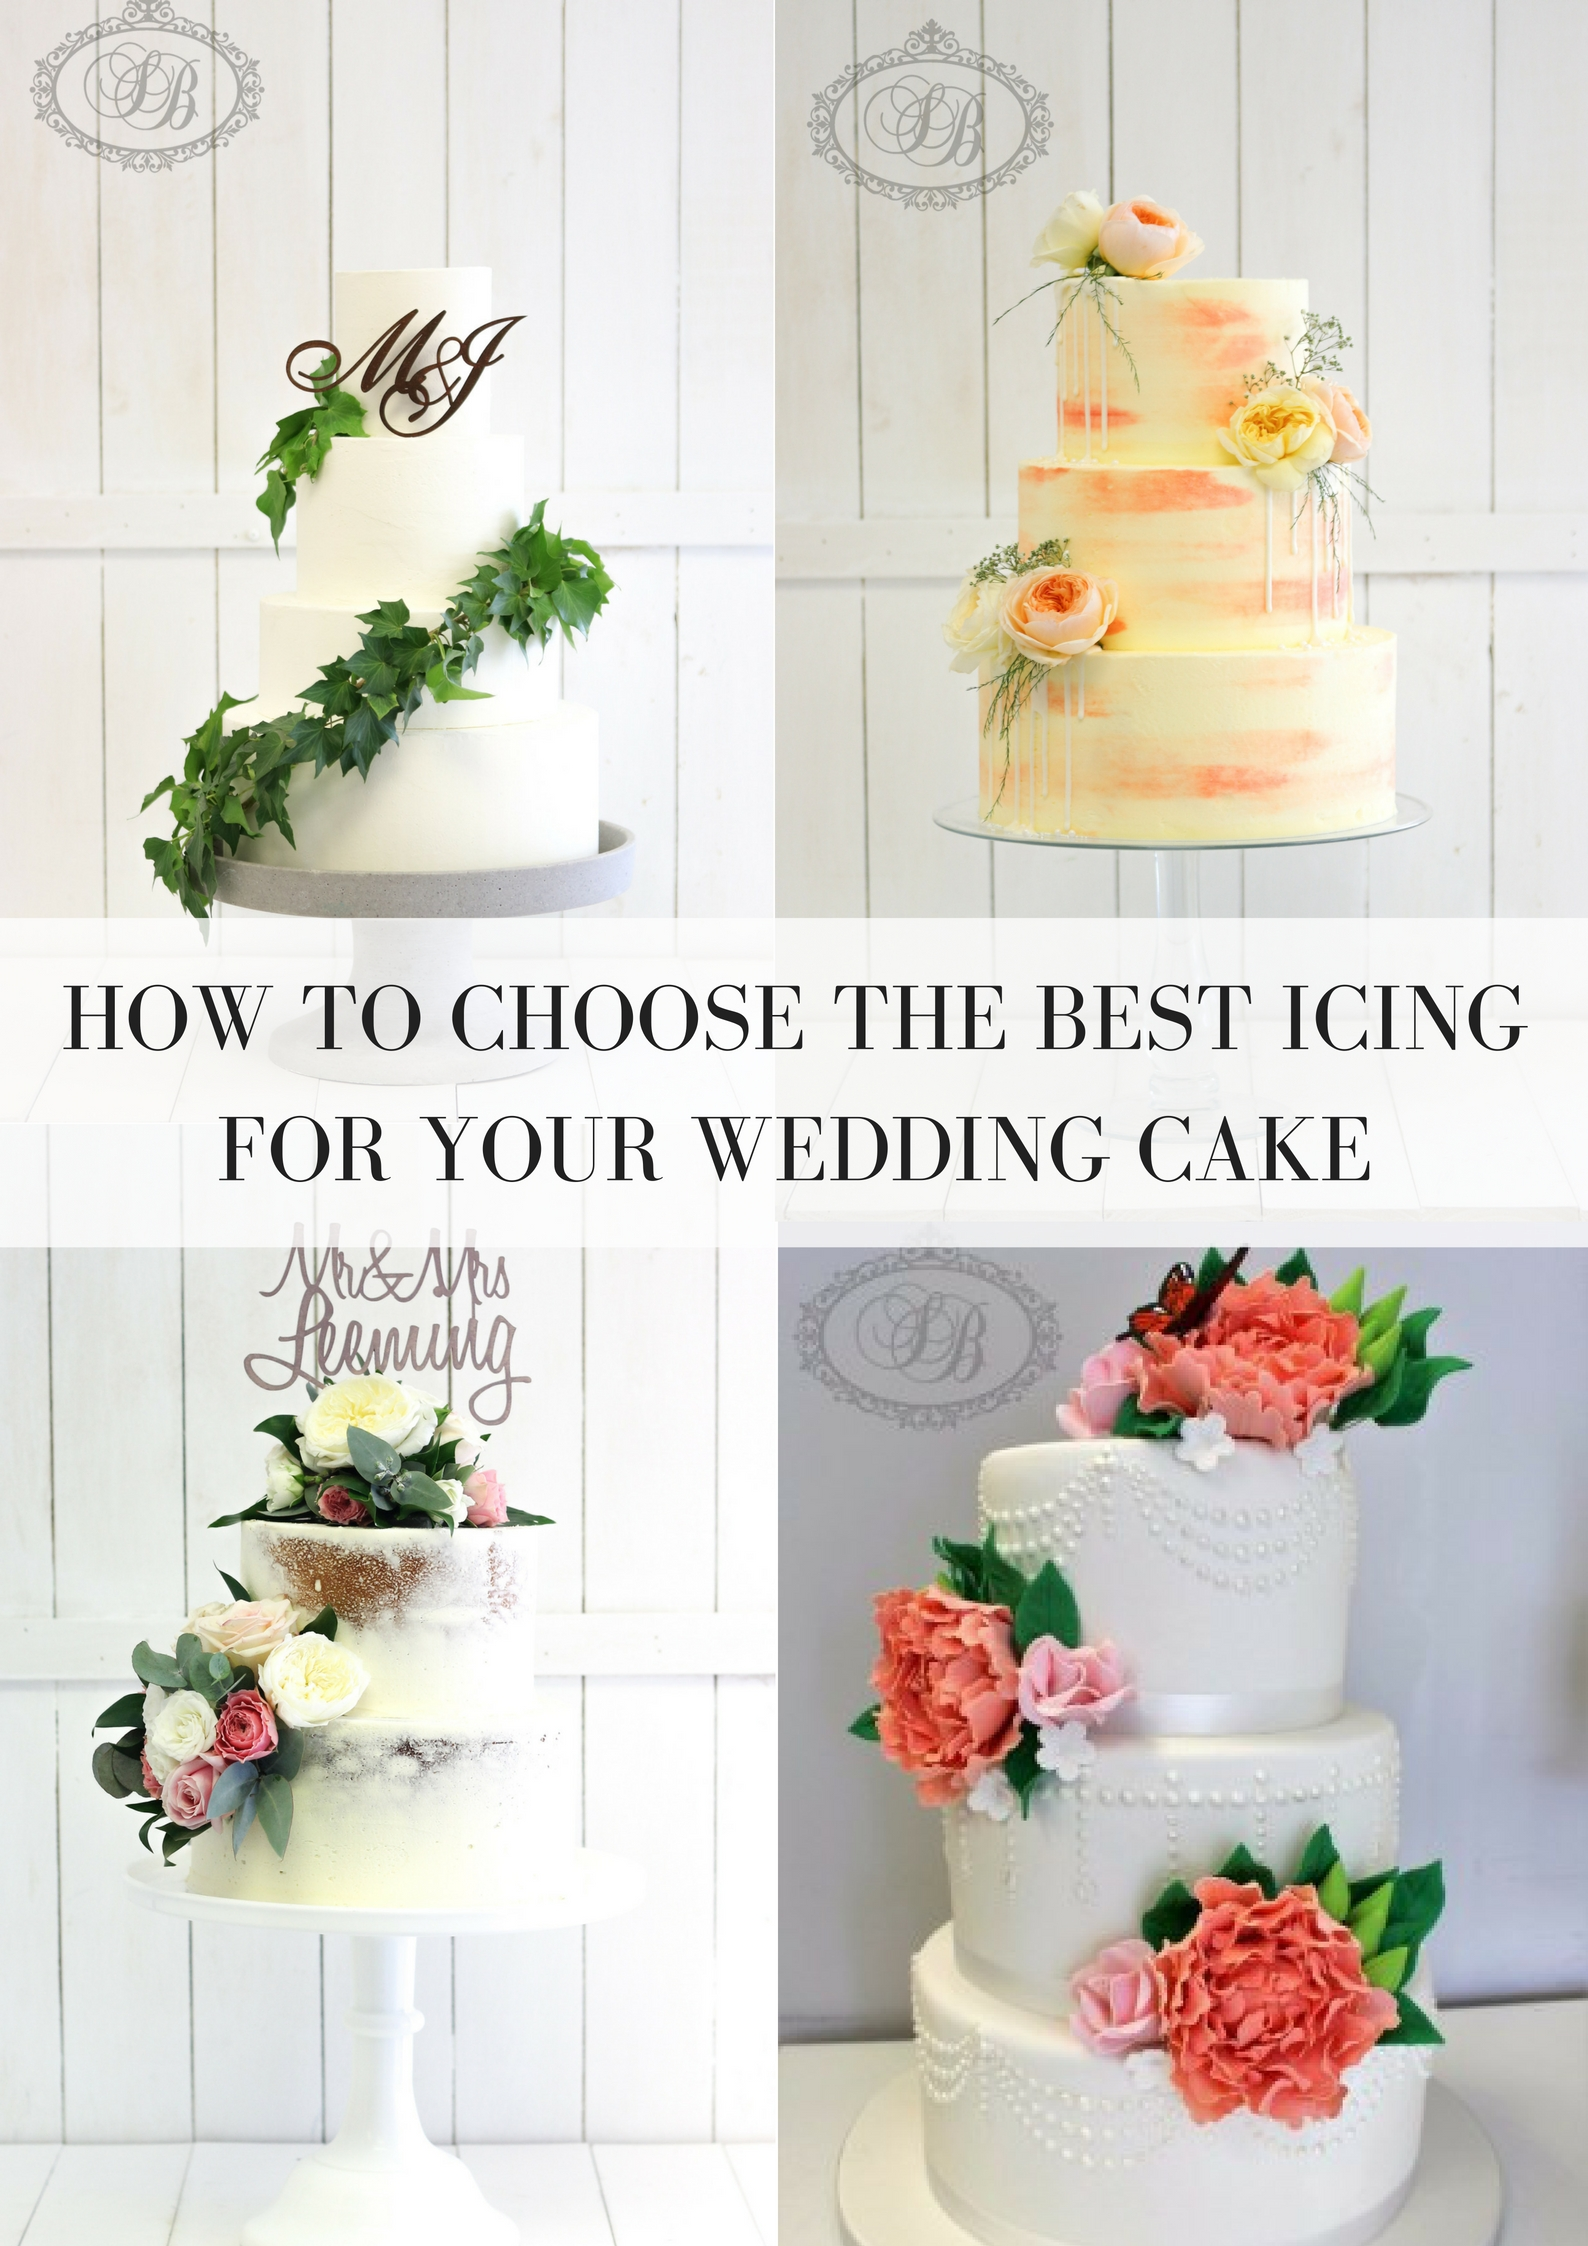 How To Choose The Best Icing For Your Wedding Cake: - Sweet Bites Cakes